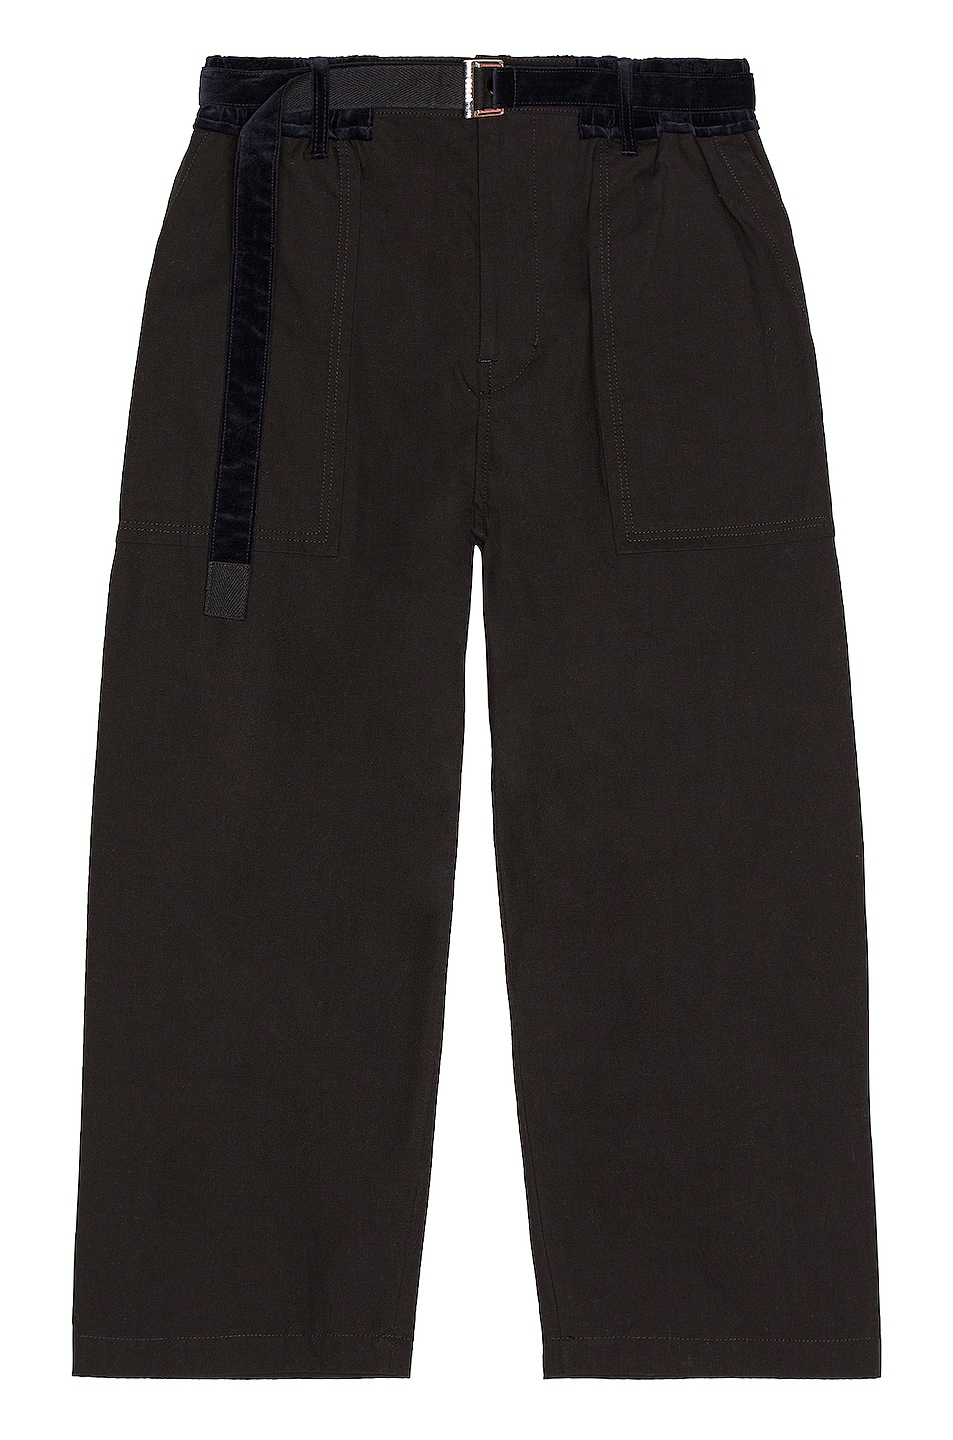 Image 1 of Sacai Cotton Oxford Pants in Black